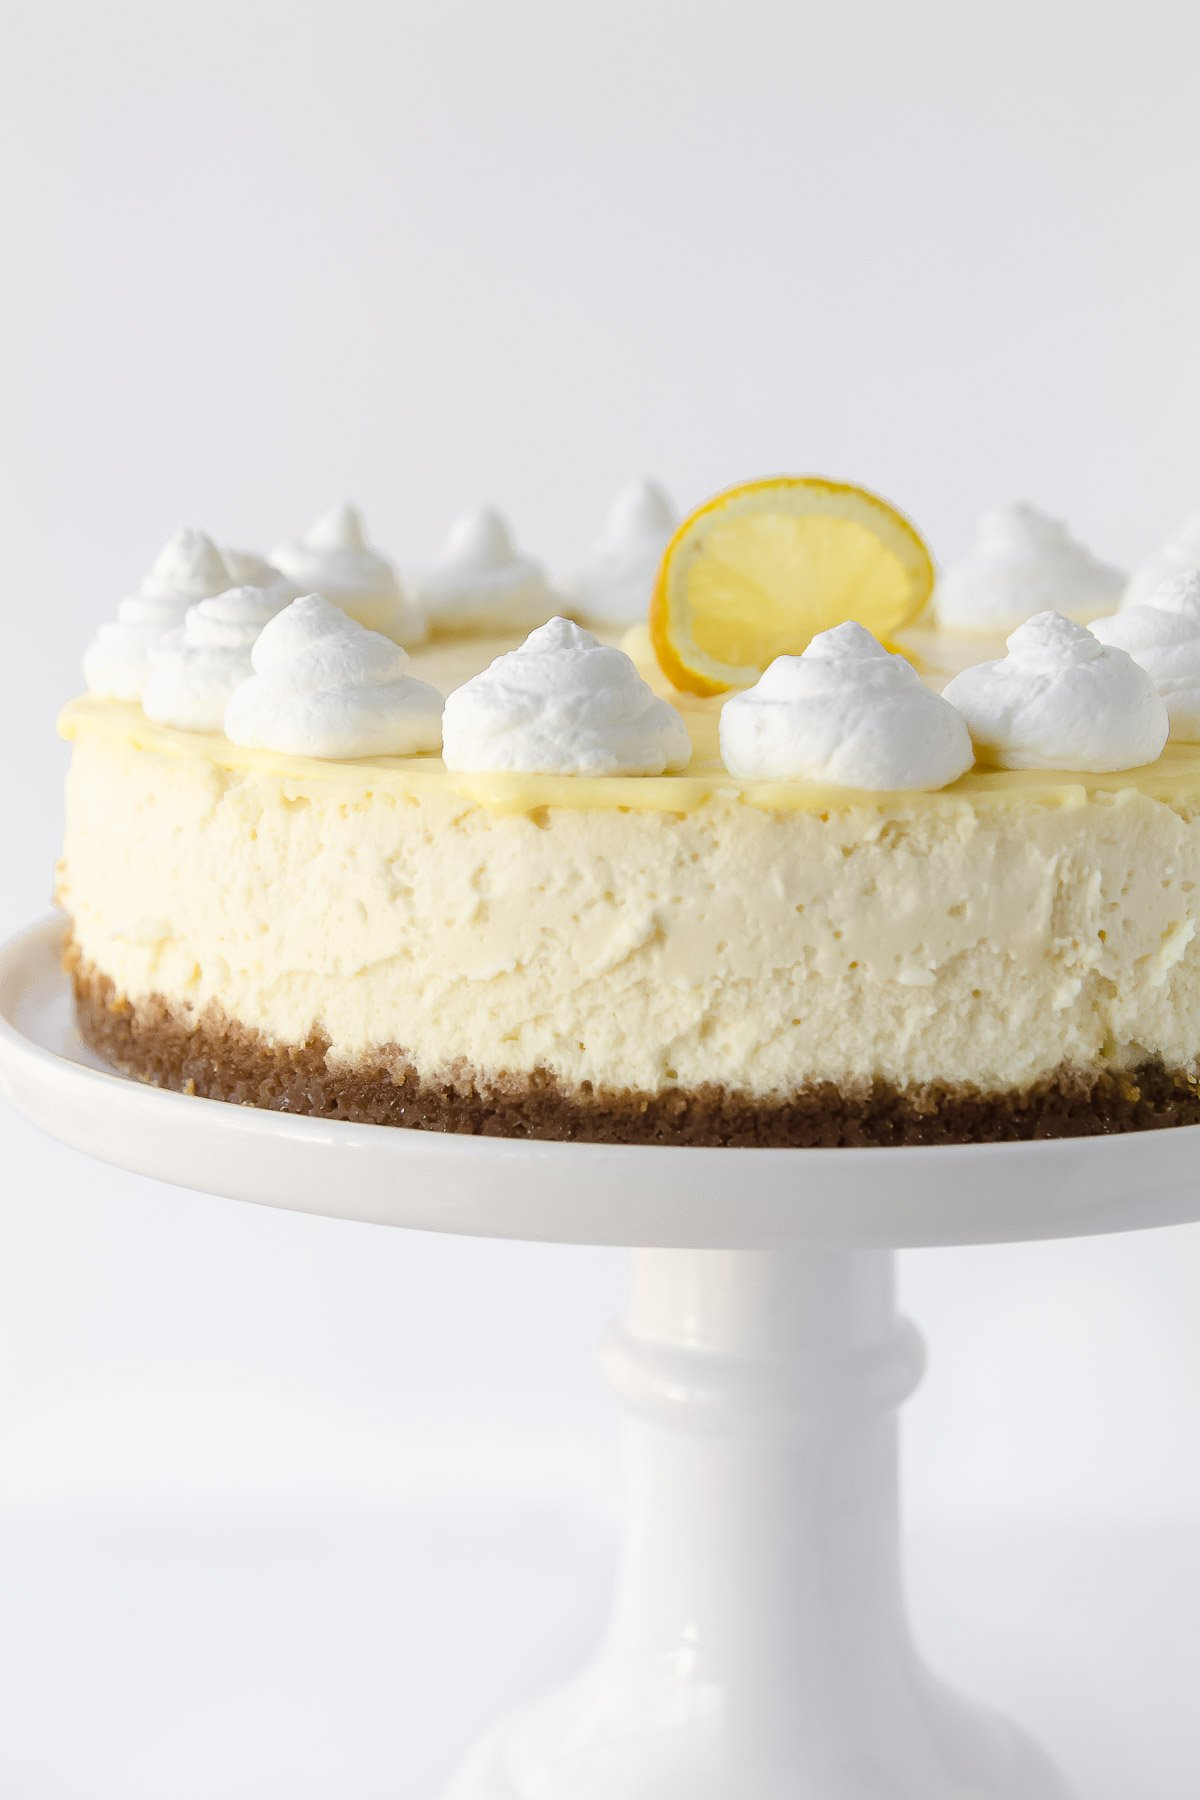 A lemon cheesecake topped with lemon curd and whipped cream.